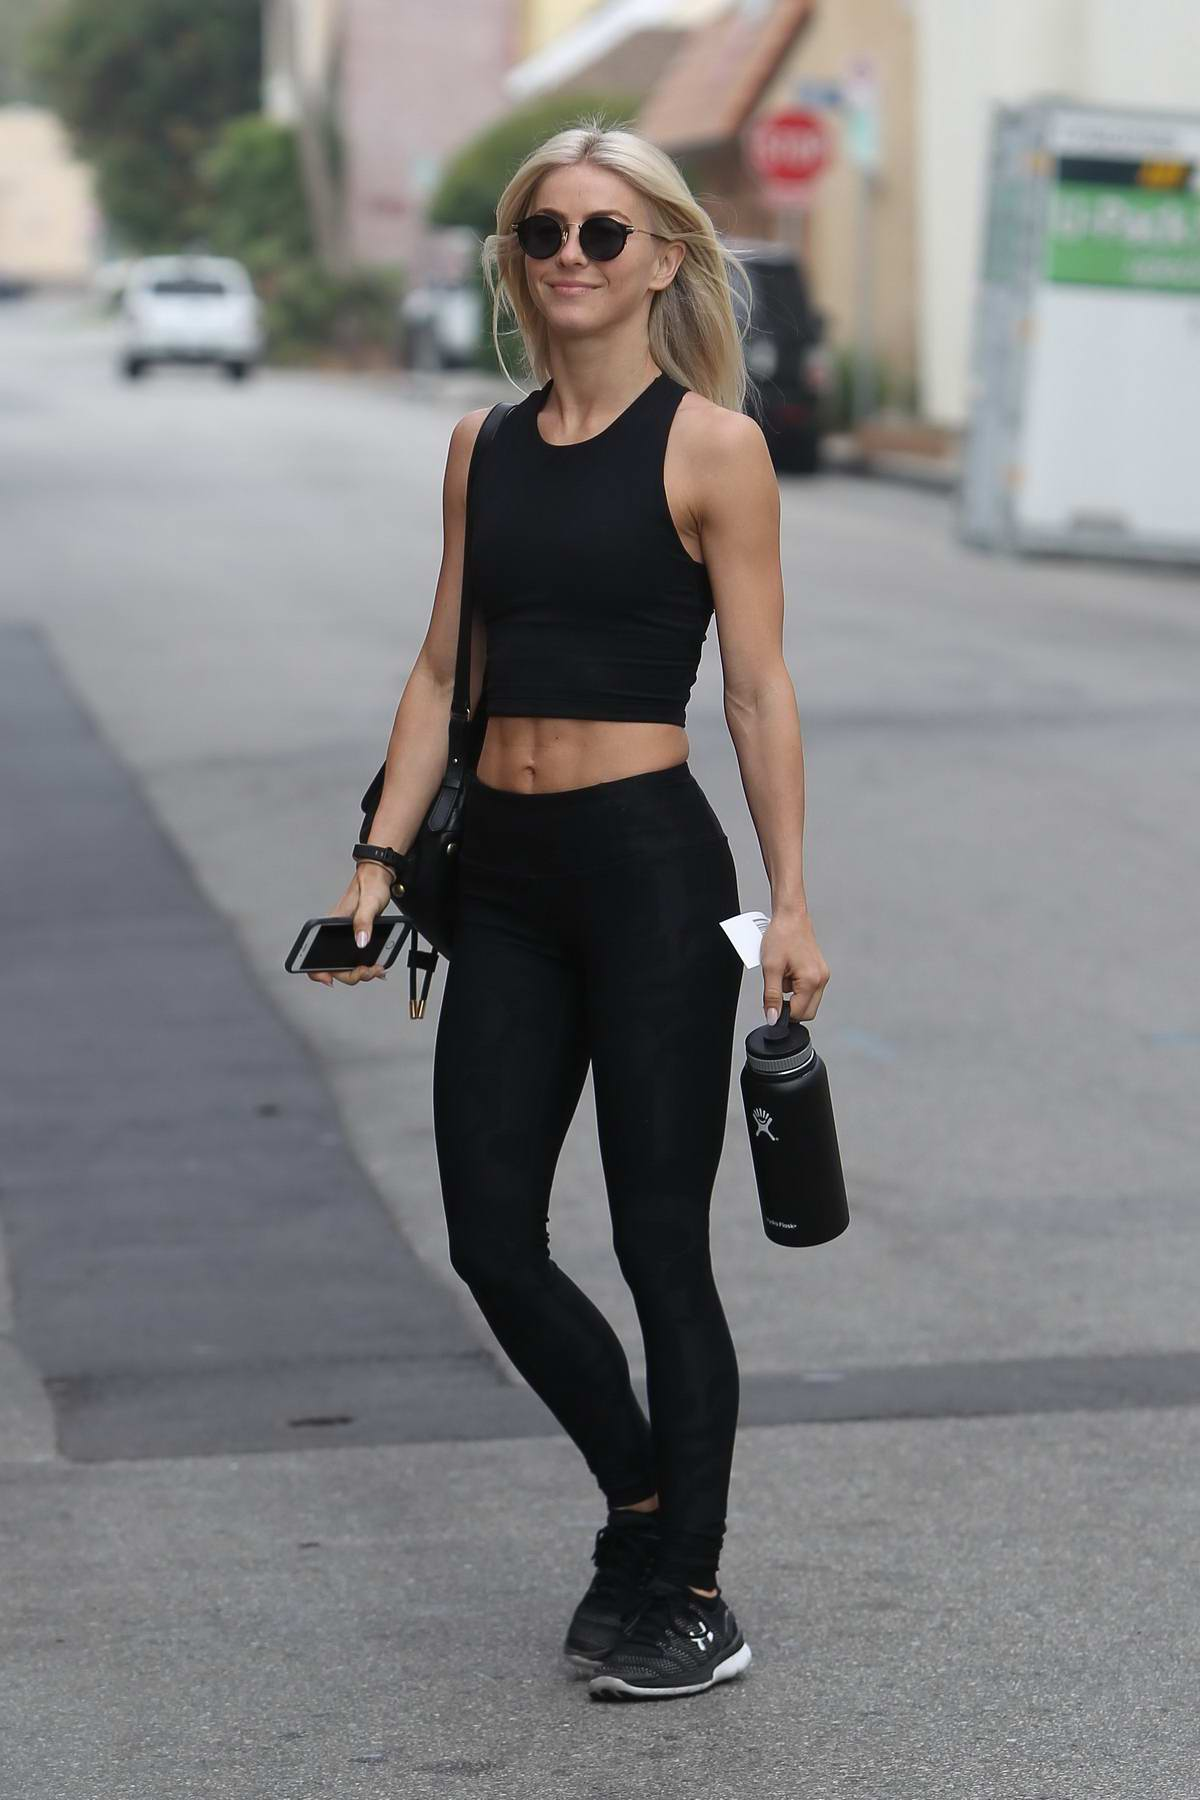 Julianne Hough heads to the Gym for her Daily Workout in Los Angeles